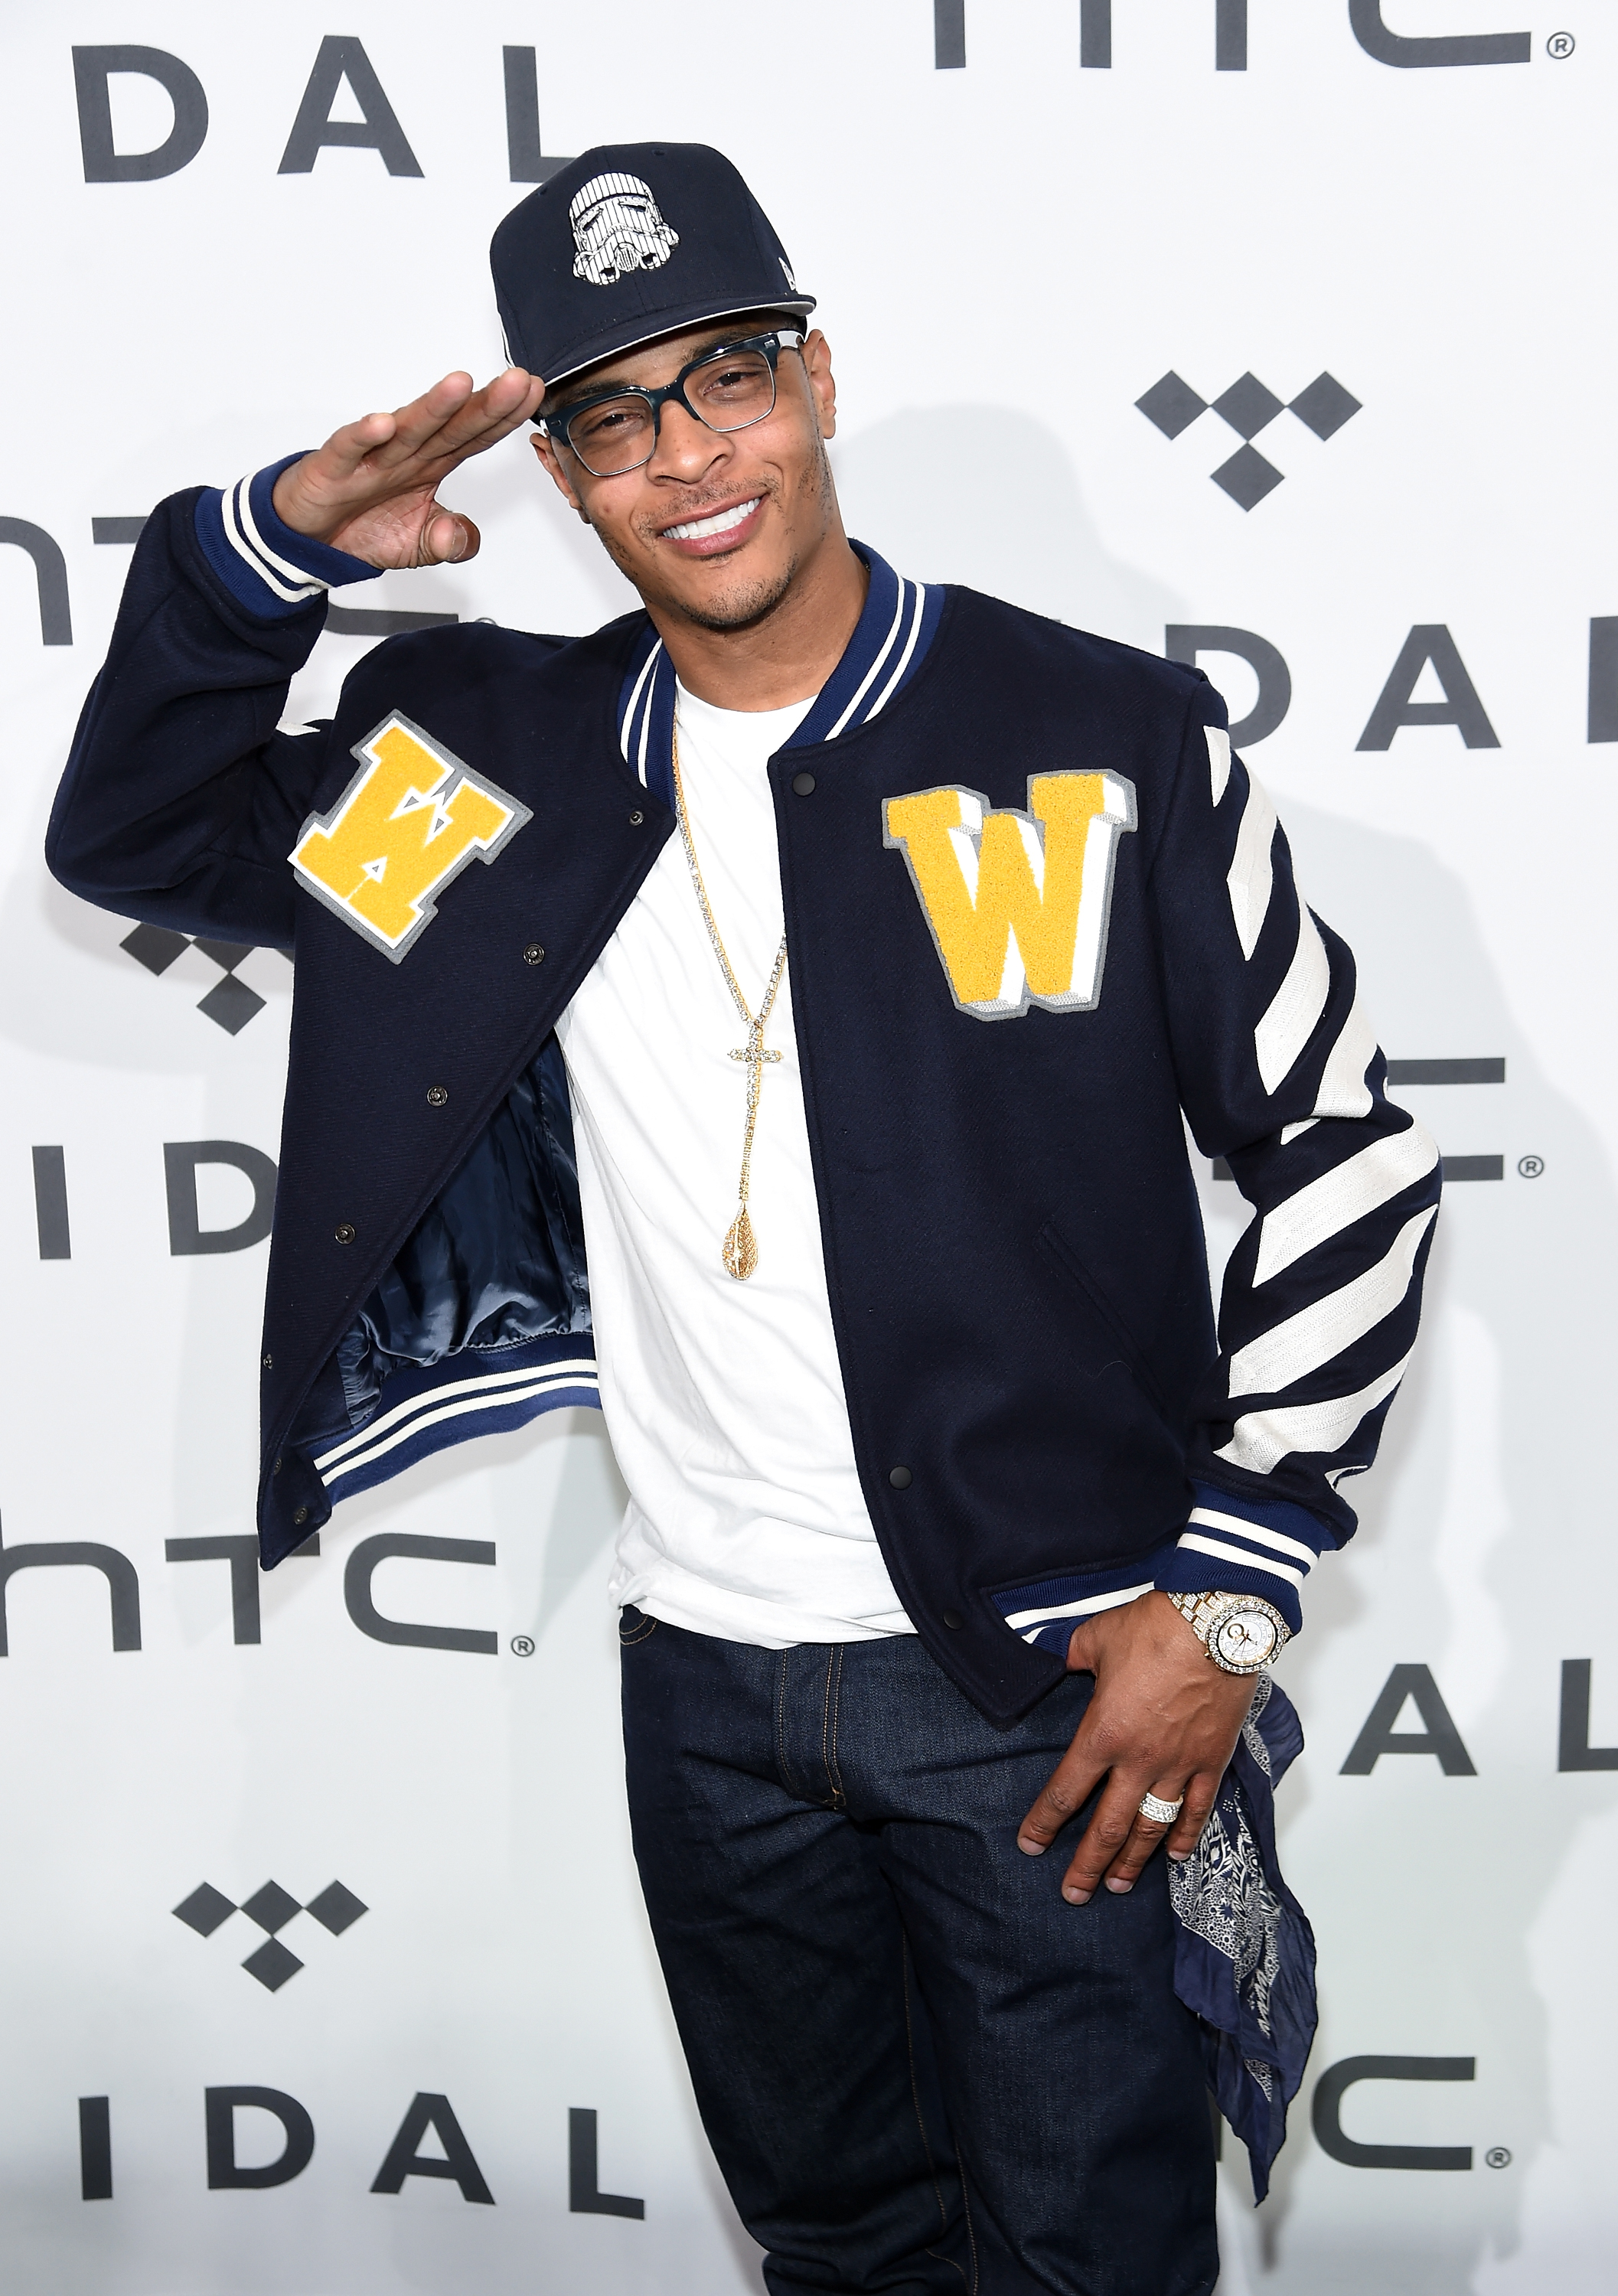 Celebrities arrive to the Tidal X 10/20 show in Brooklyn